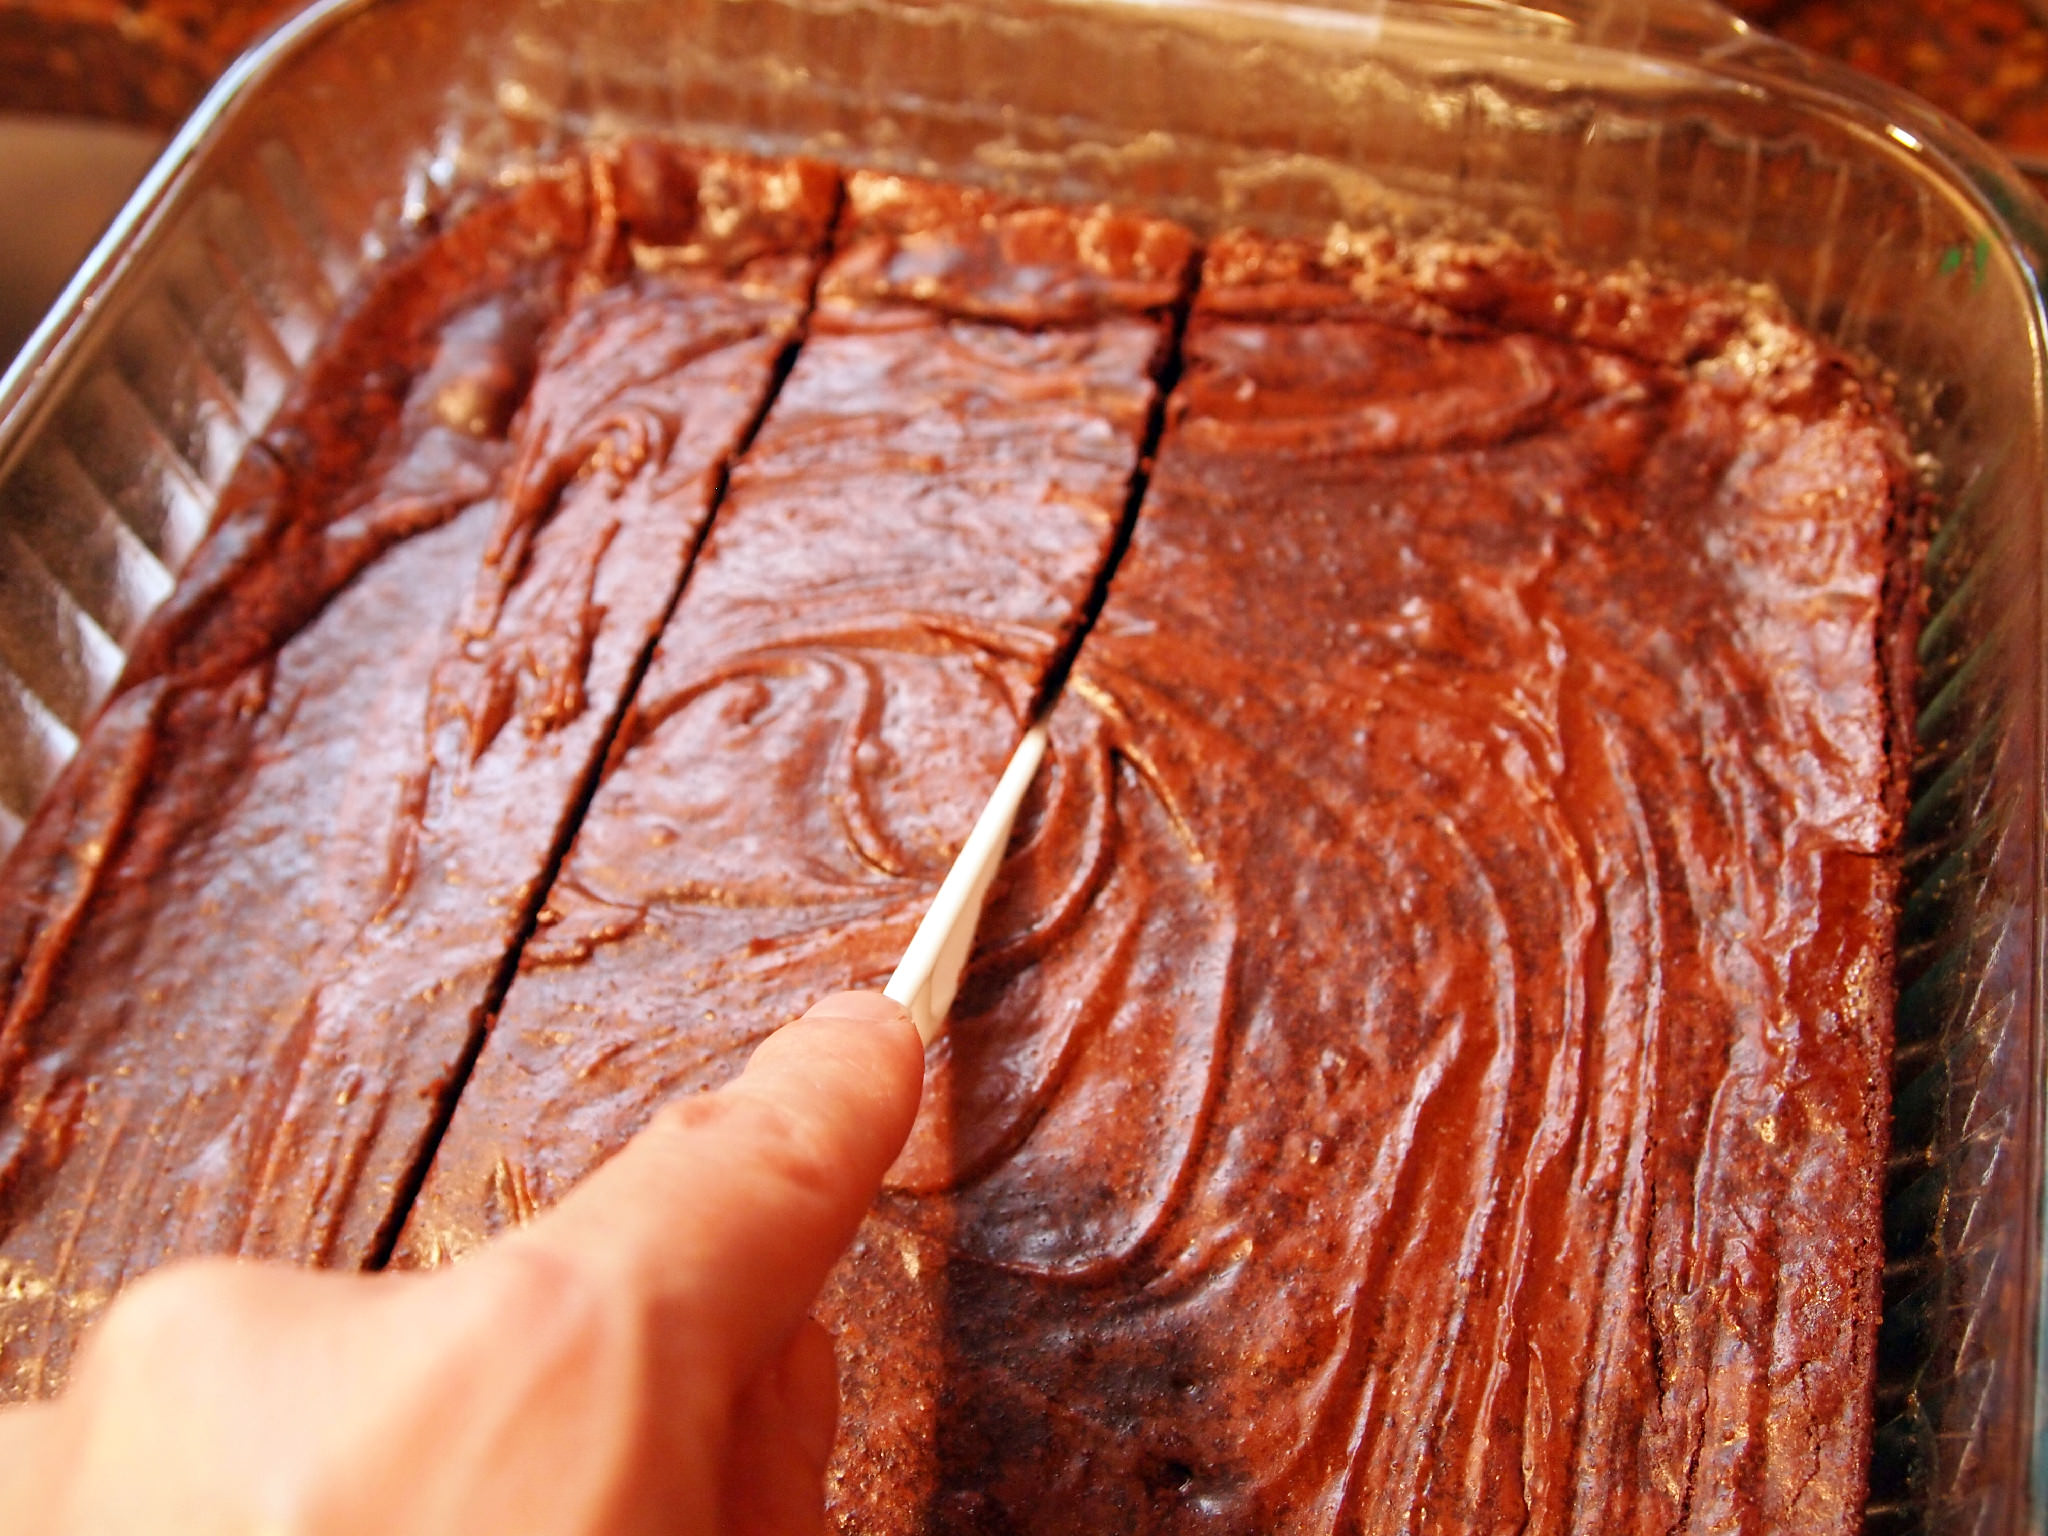 slicing a pan of brownies